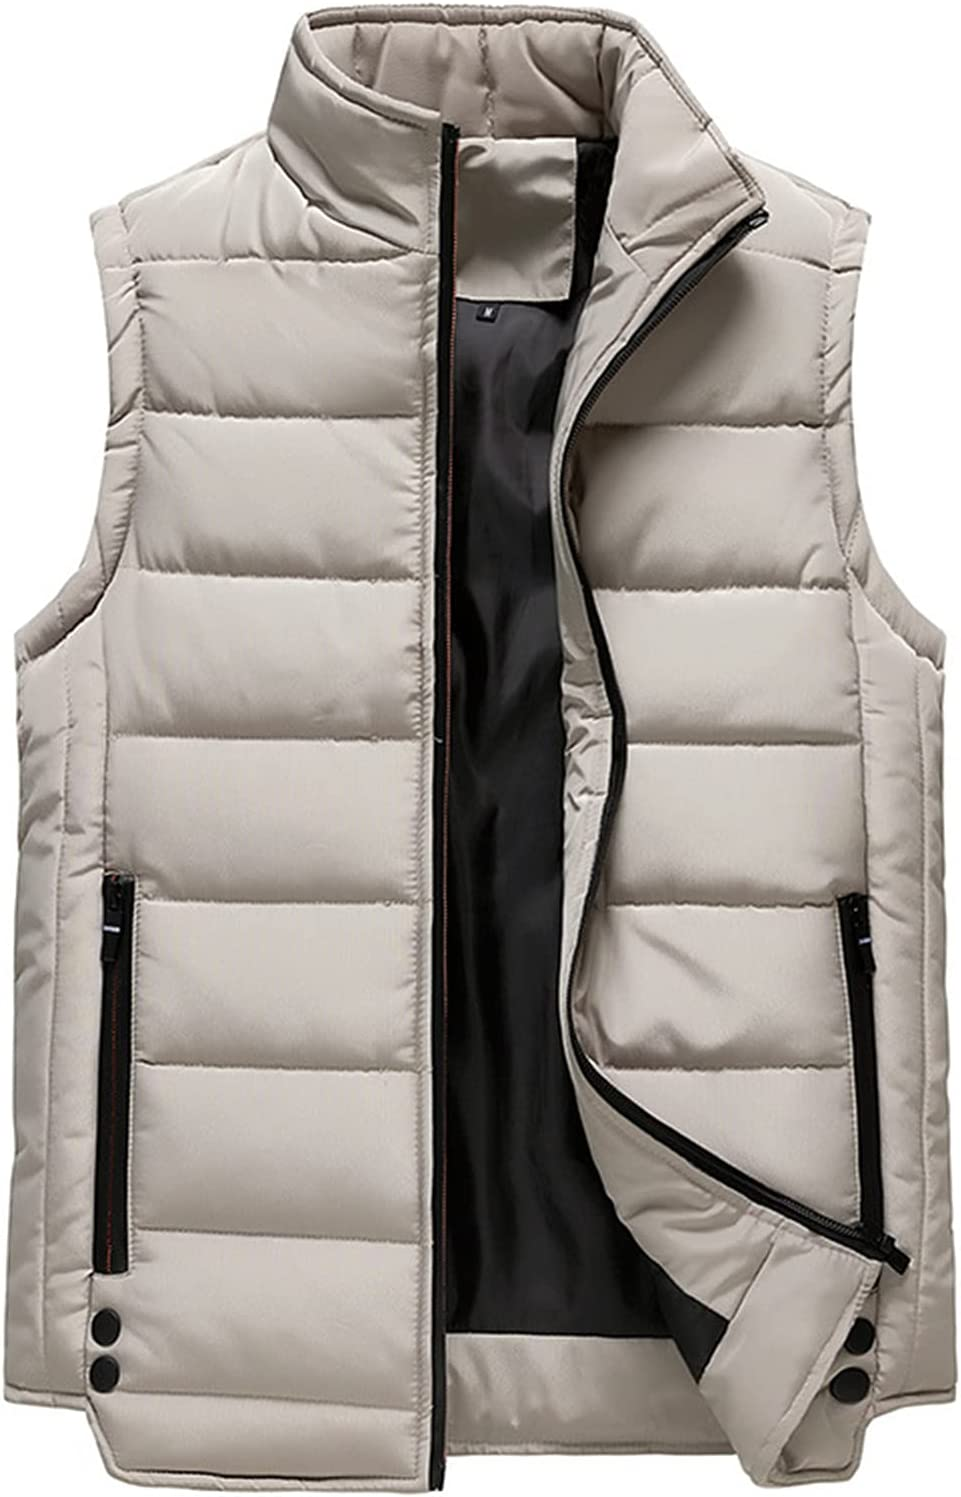 BWCX Outdoor Lightweight Water-Resistant Packable Puffer Vest for Men Hooded Outerwear Jackets Coats,Gray,M